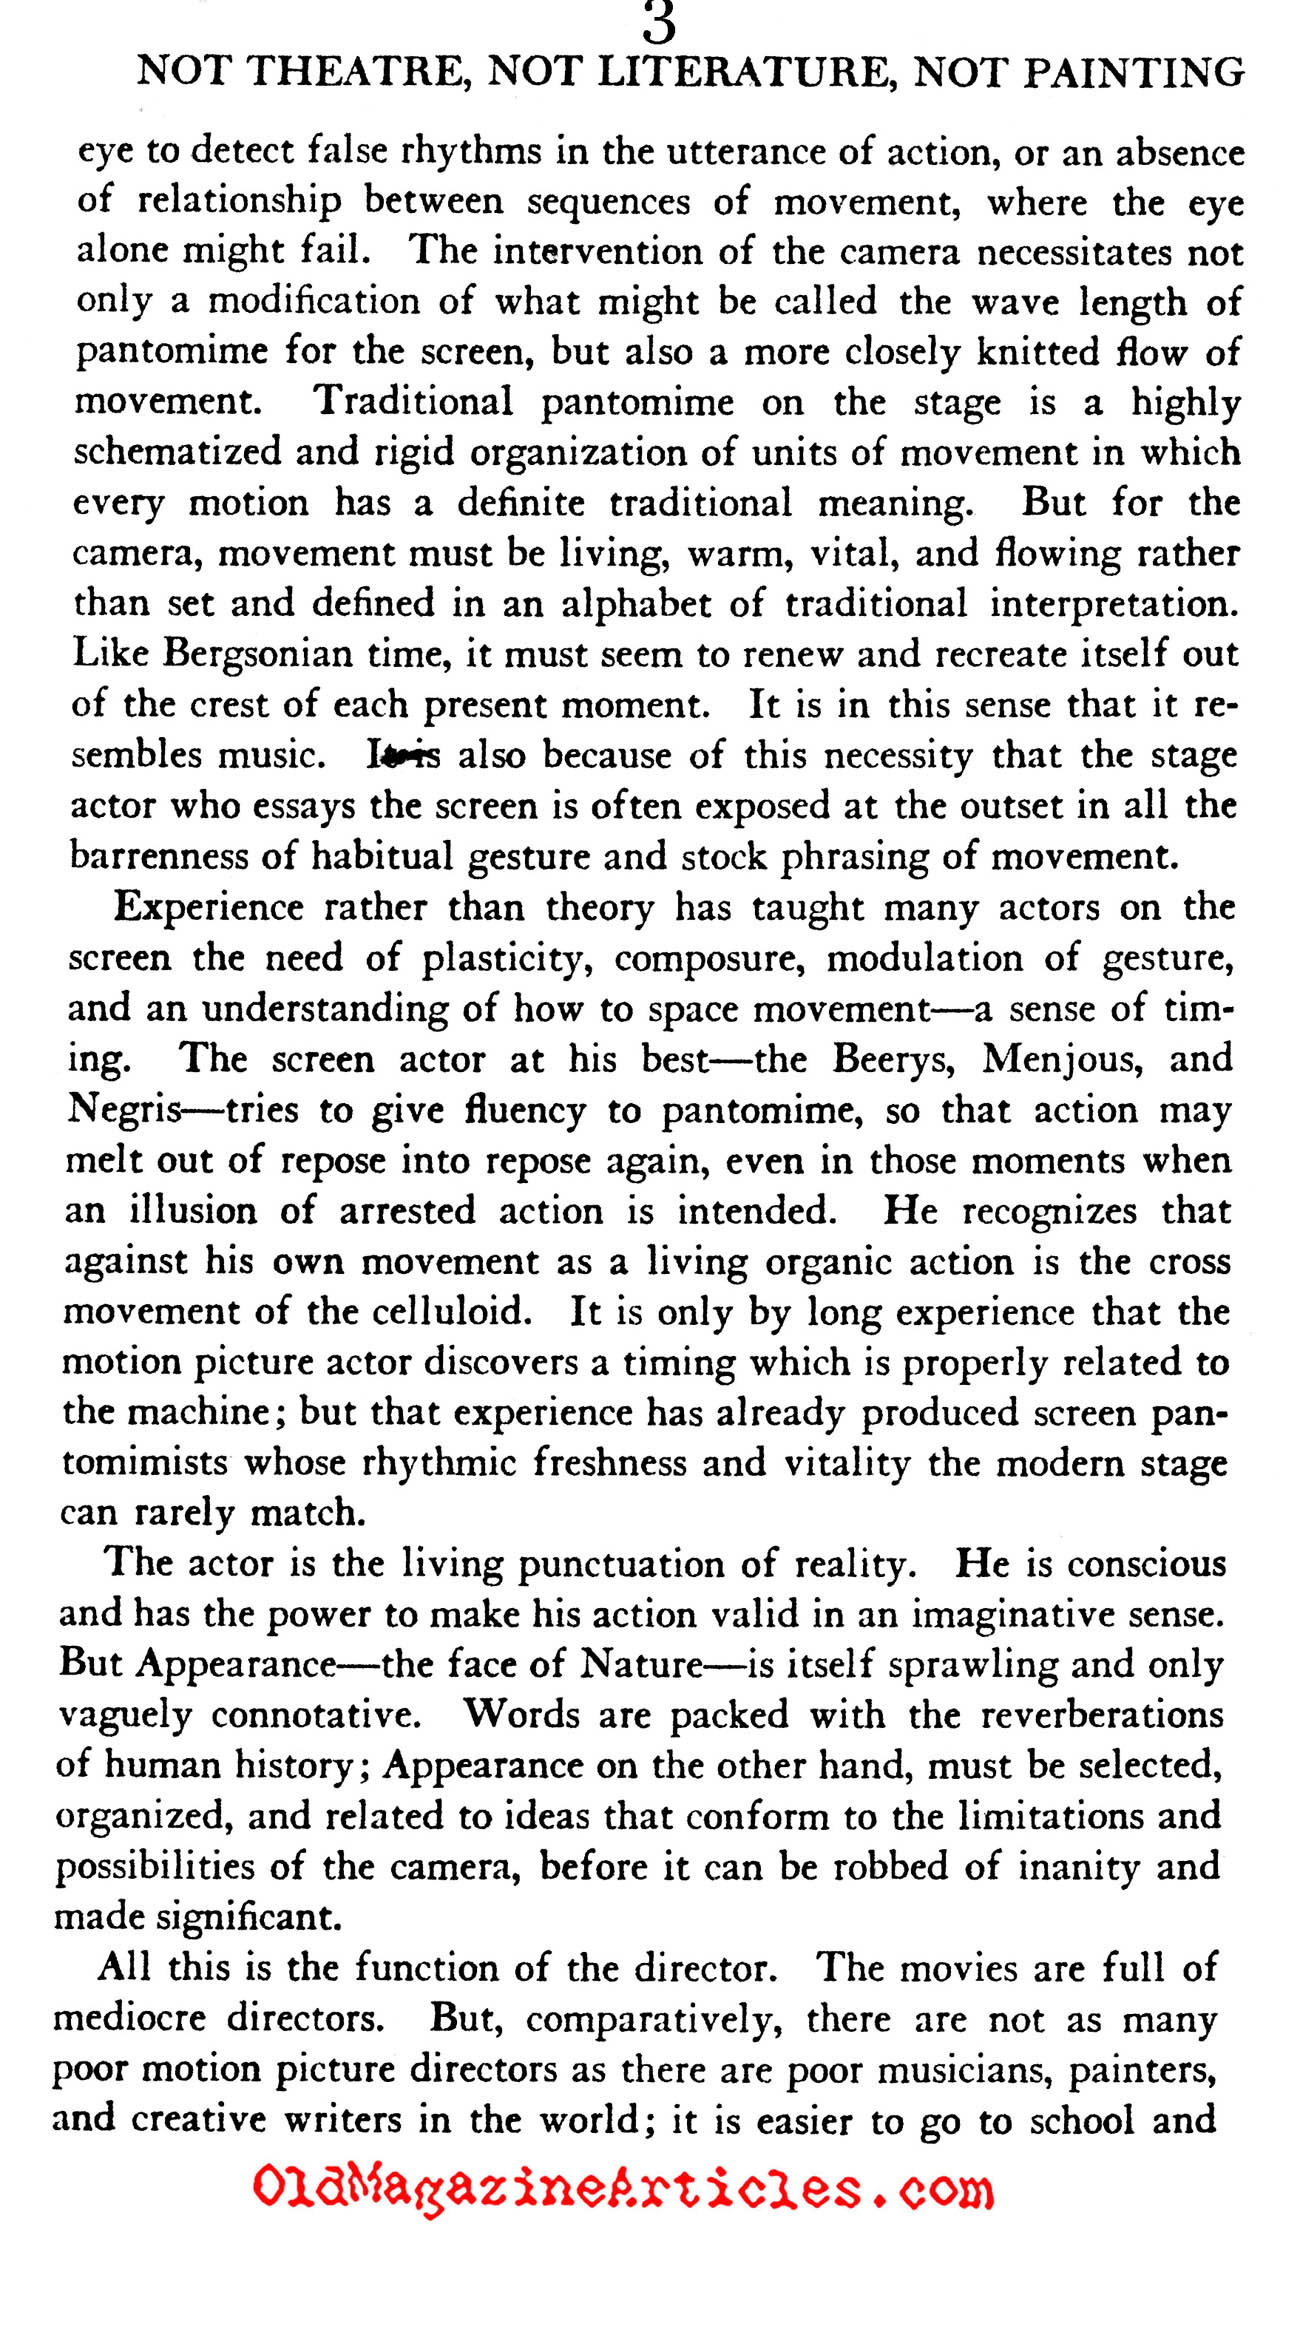 ''Film Cannot Be Art'' (The Dial Magazine, 1927)